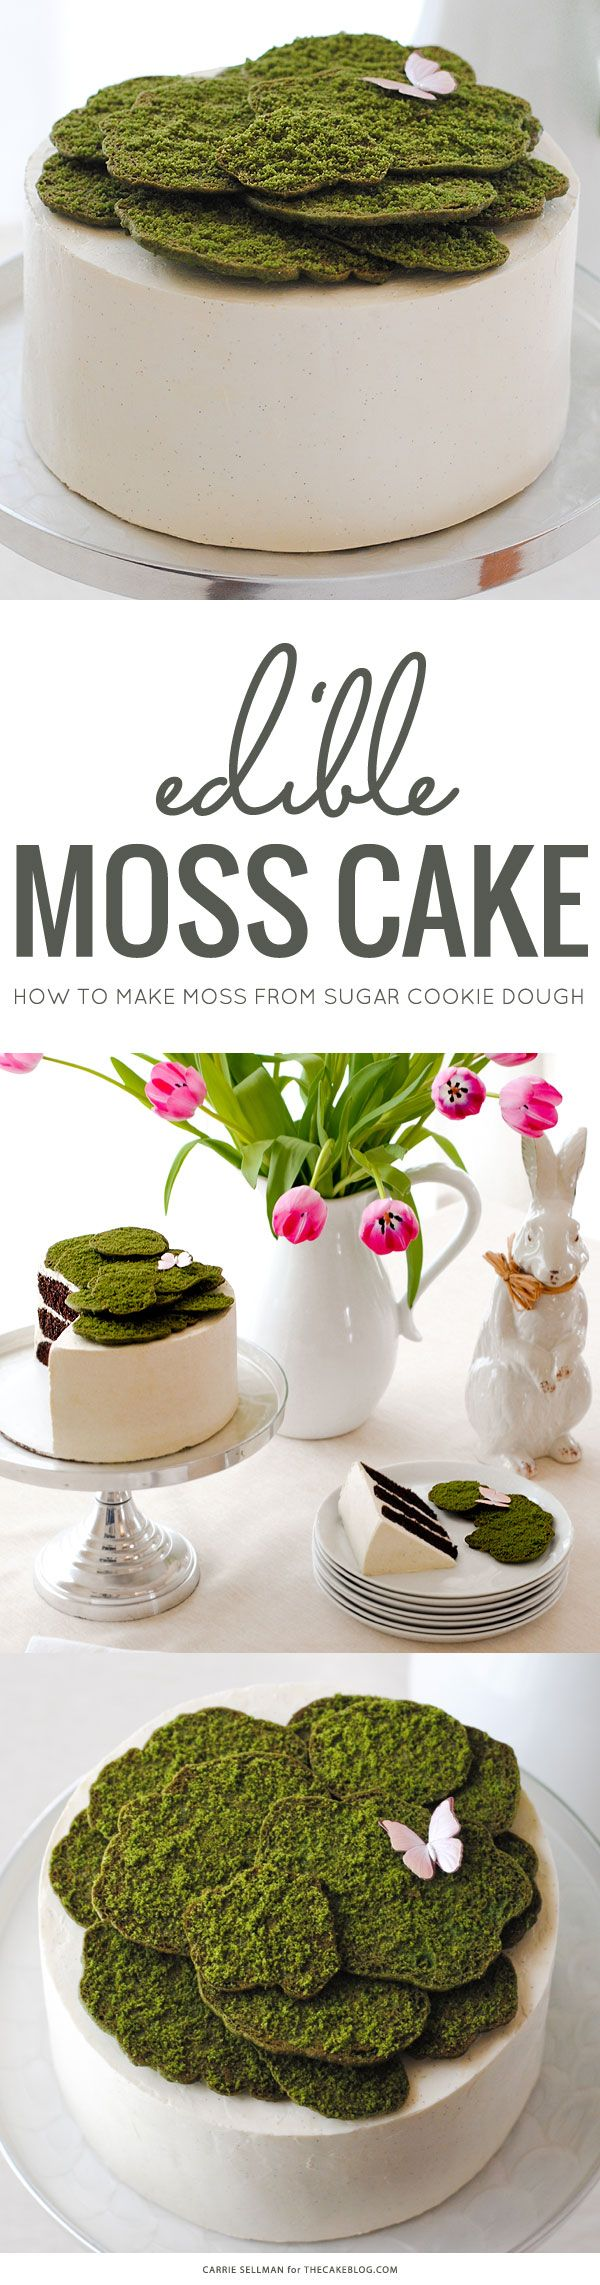 Learn how to make an edible moss cake, perfect for spring, Easter, Mother's Day or bridal showers. By Carrie Sellman for TheCakeBlog.com.